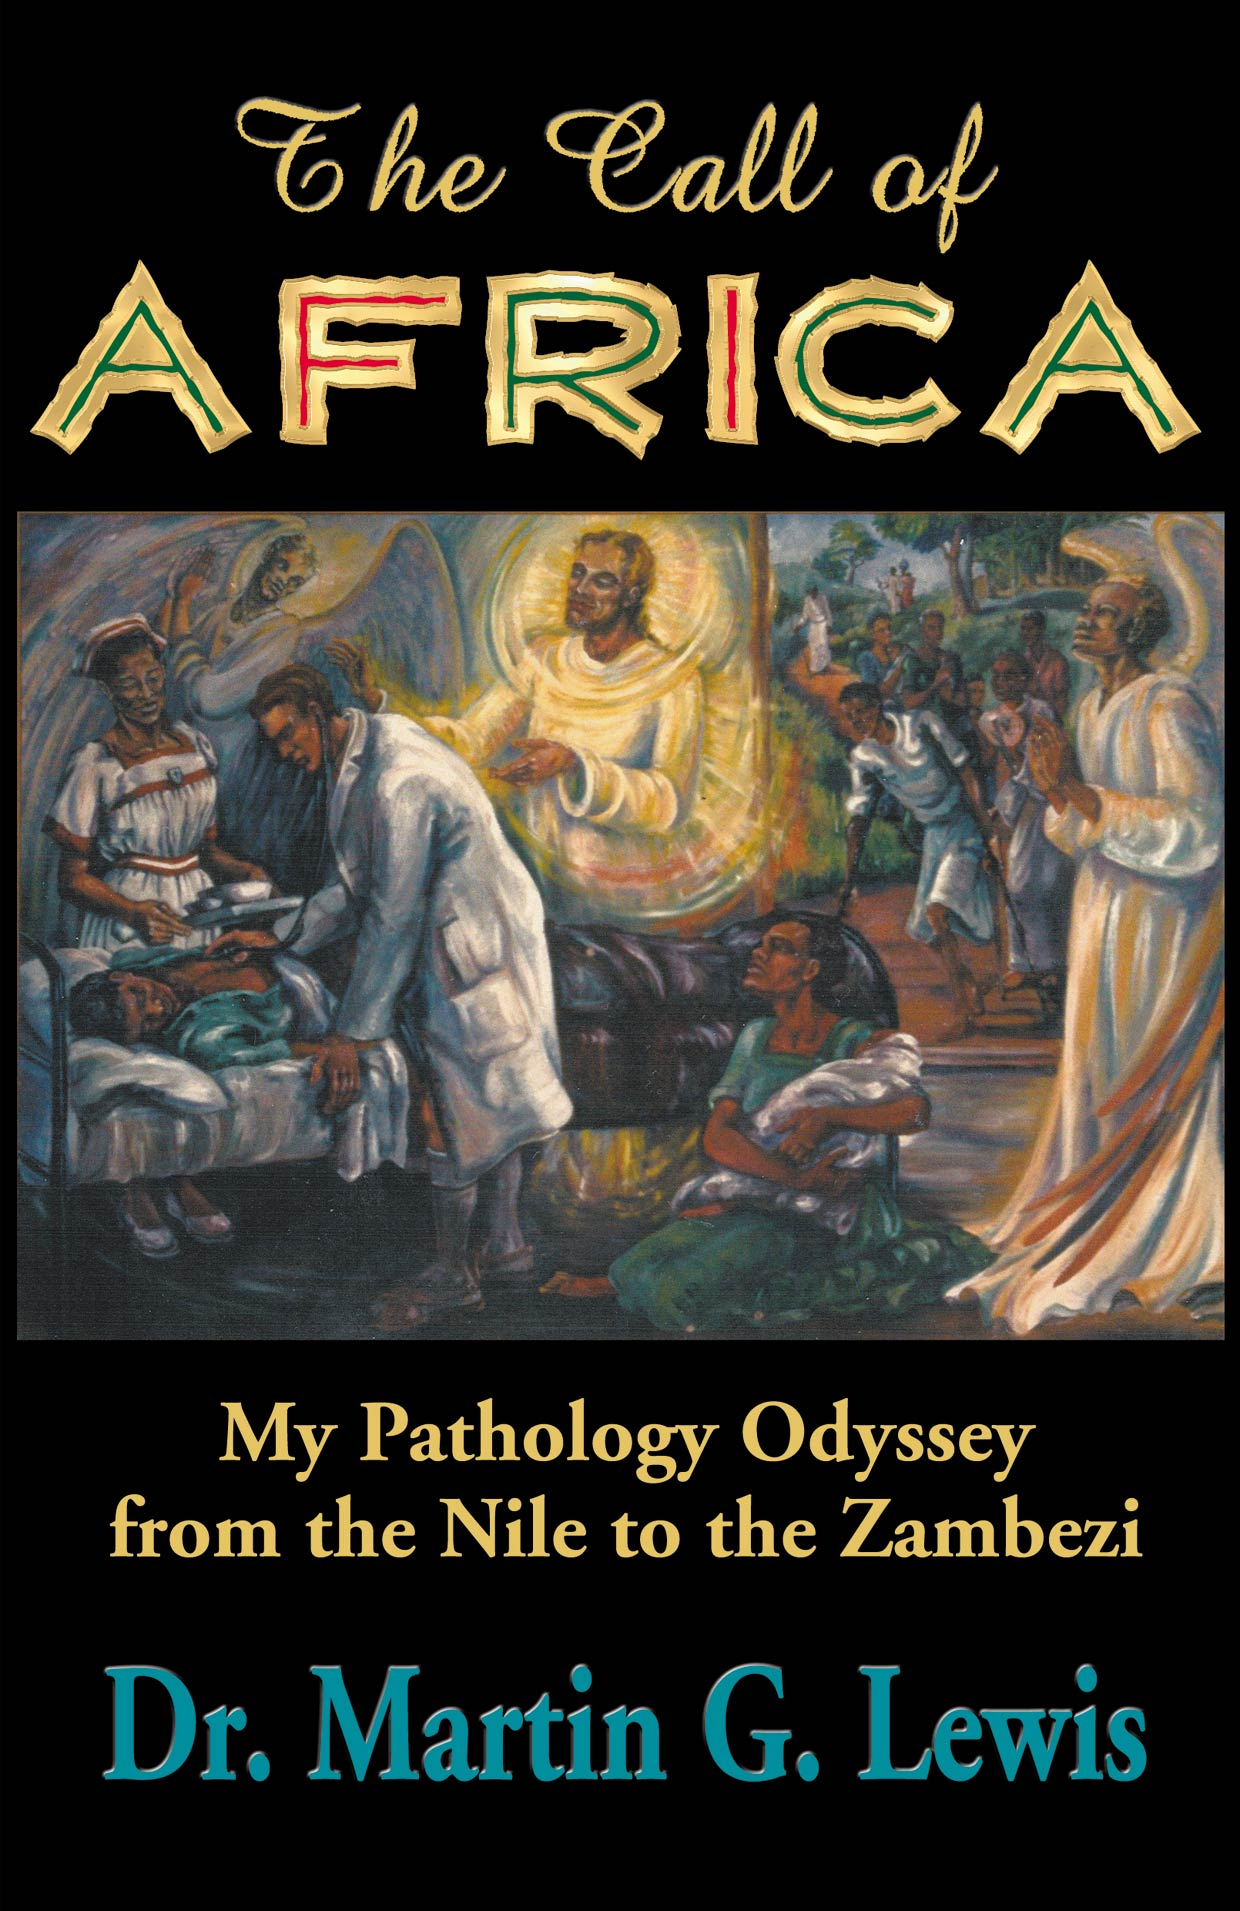 The Call of Africa: My Pathology Odyssey from the Nile to the Zambezi